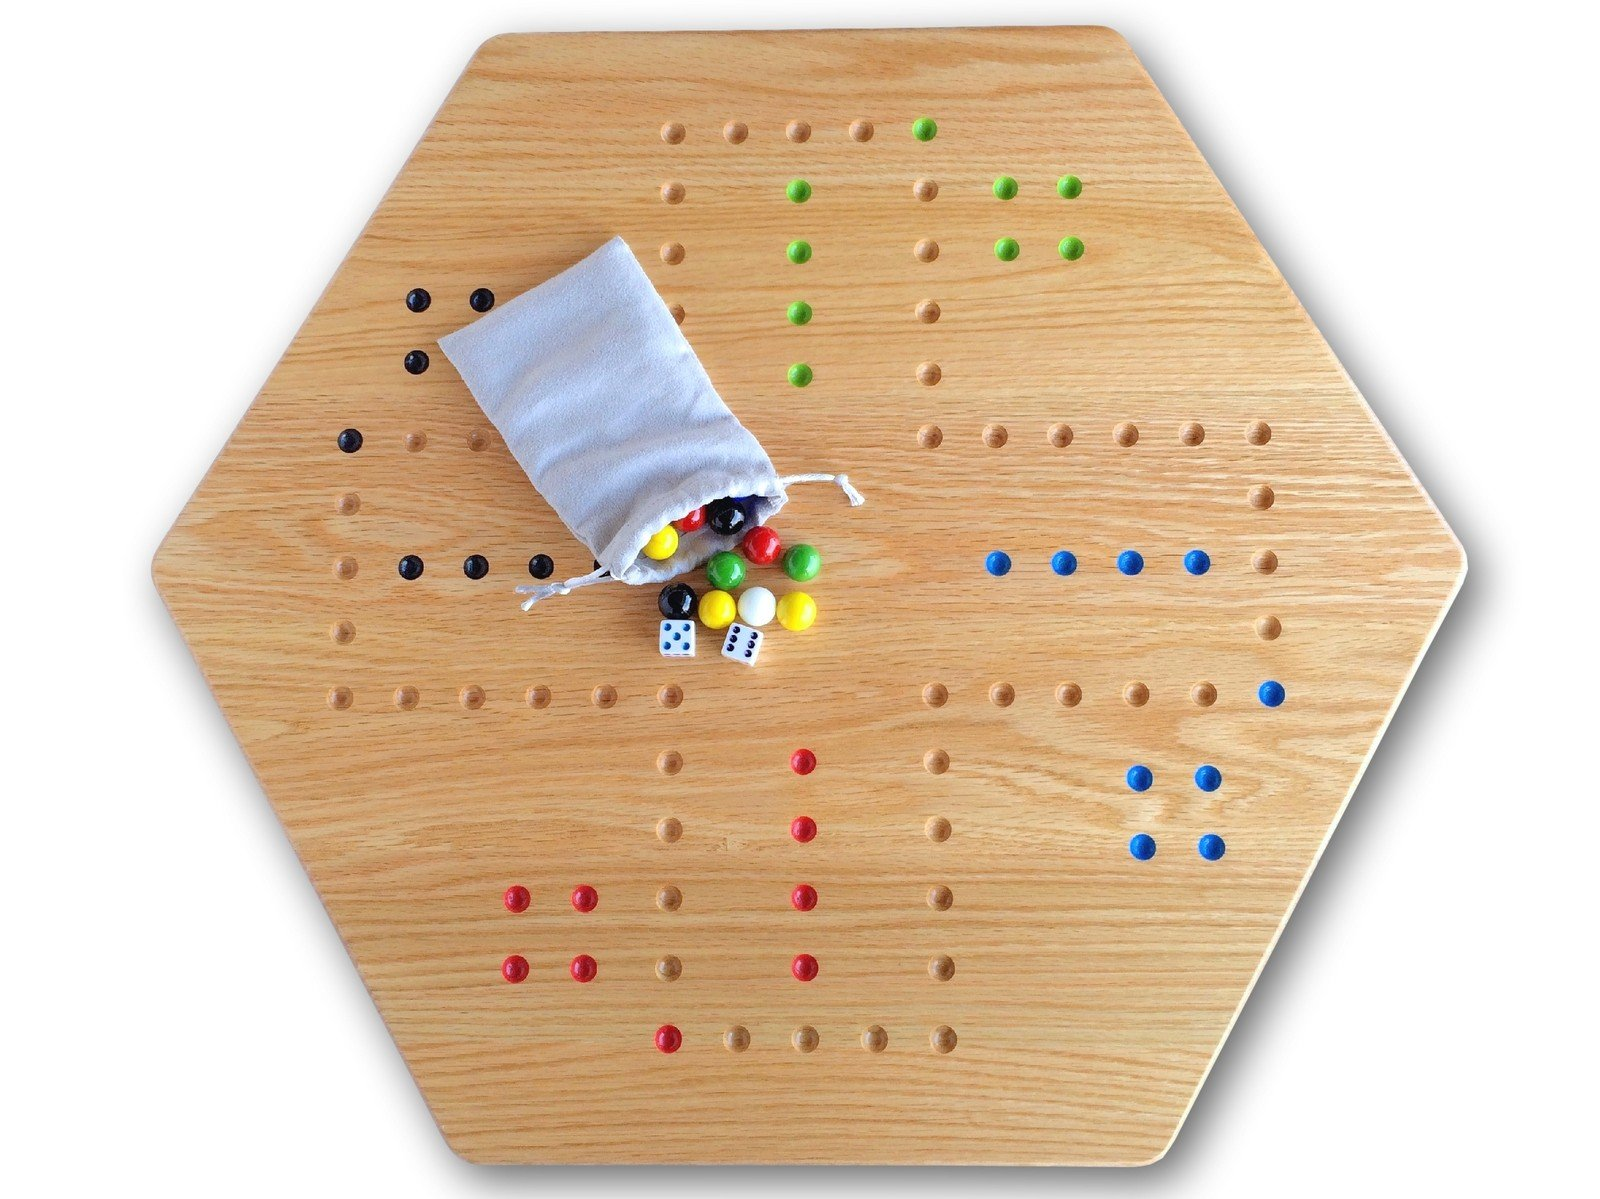 Large Oak Hand-Painted 24'' Wooden Aggravation Game Board, Double-Sided by AmishToyBox.com by AmishToyBox.com